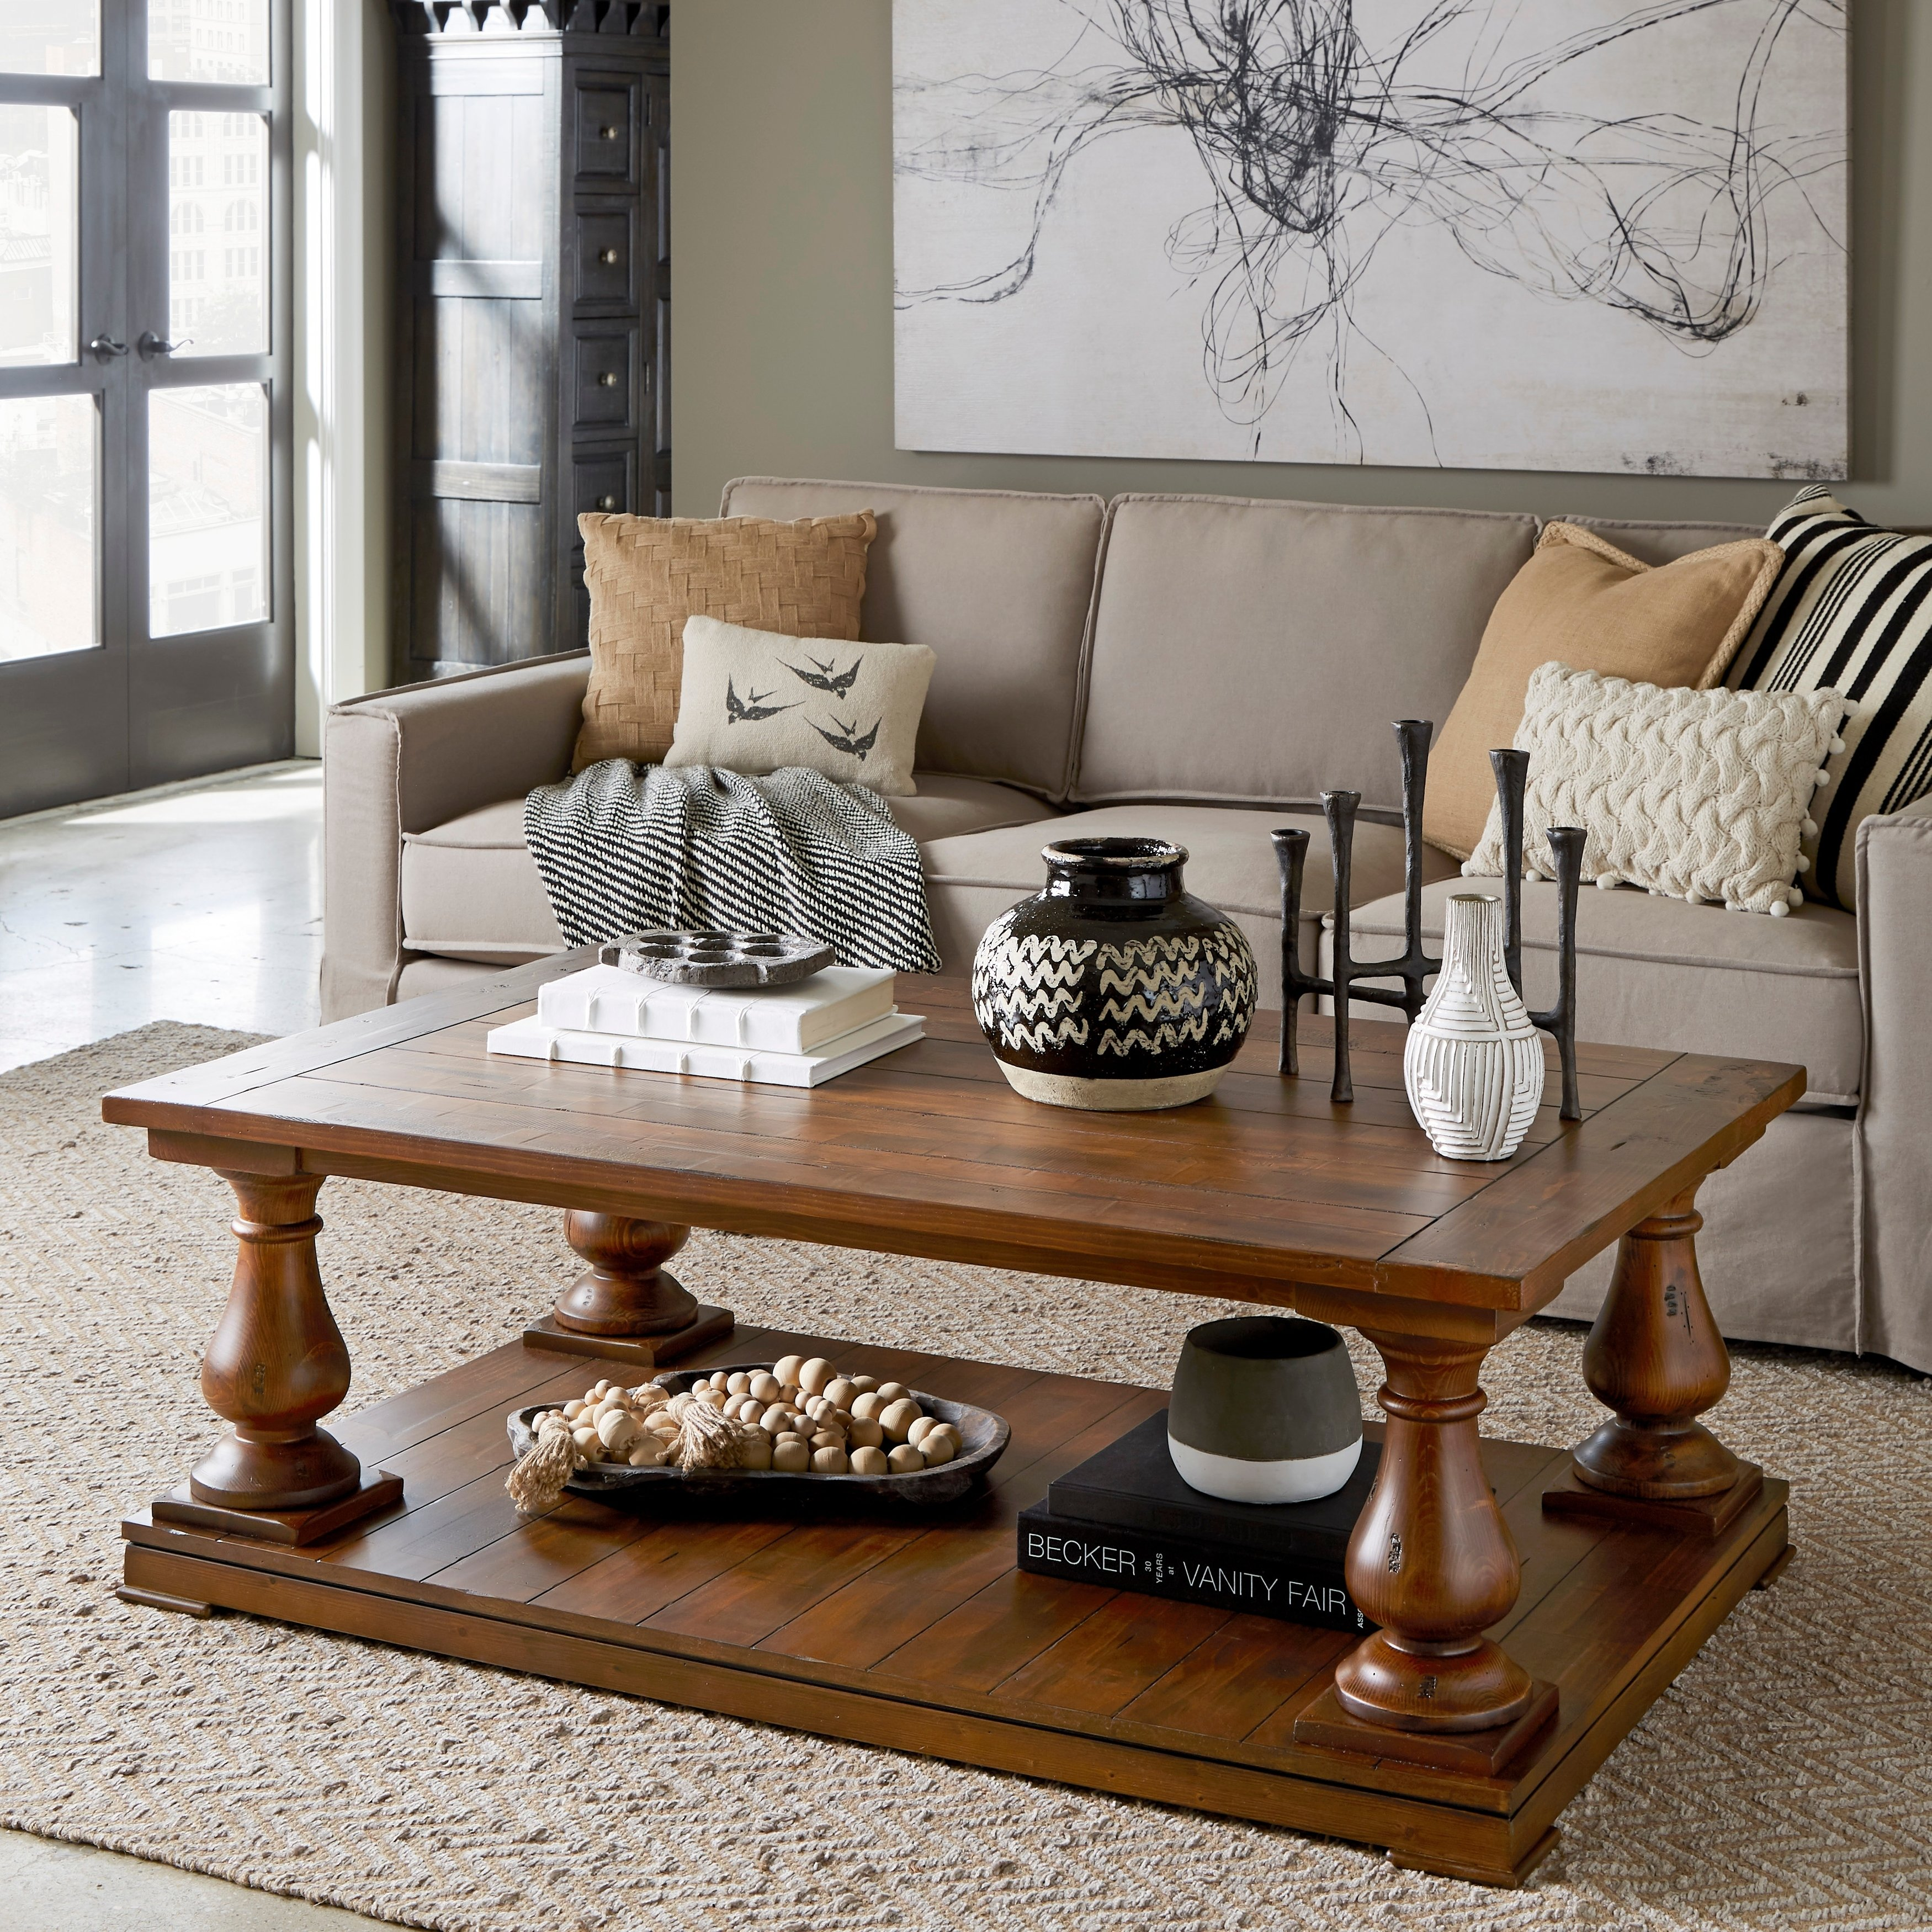 densbury traditional rustic natural pine coffee table pottery barn jamie accent free shipping today coastal lamps bronze for bedroom pier one imports dining room tables aluminum